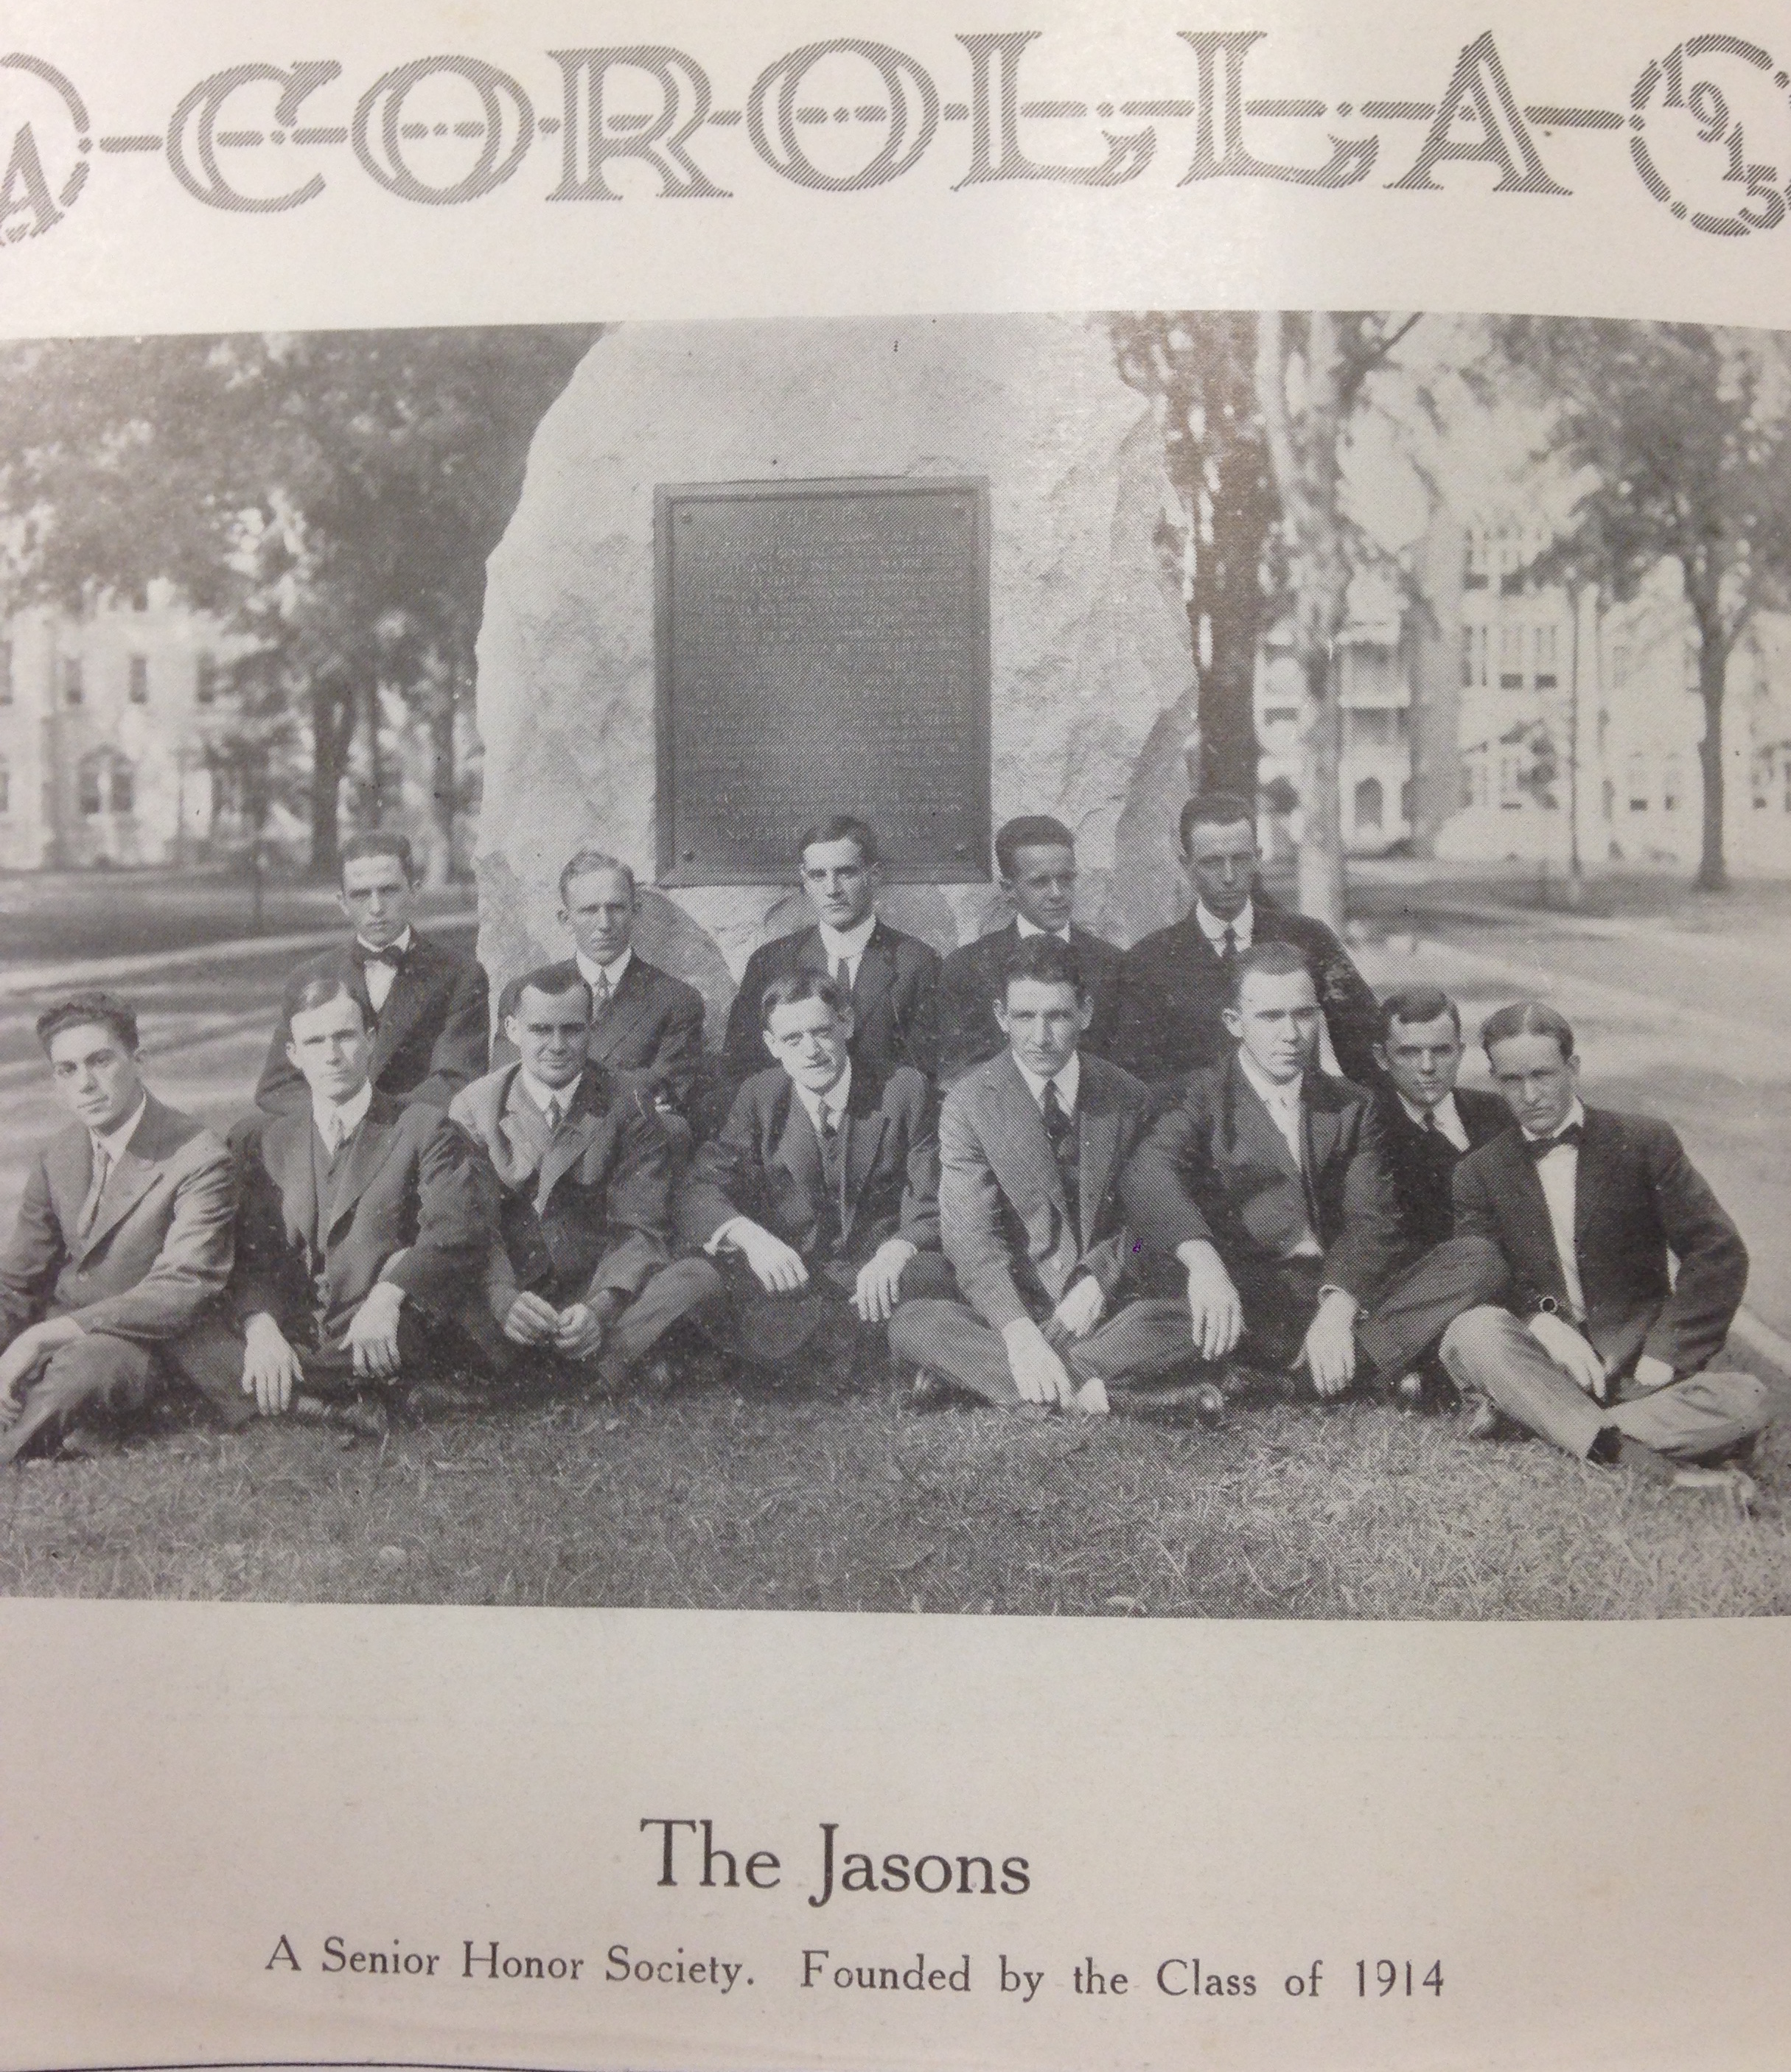 A Senior society called 'The Jasons' posed next the UDC boulder. Here you can see the boulder in its original location (the Rotunda), as well as what it looked like just after it was received by UA Corolla 1914 (W. S. Hoole Special Collections)